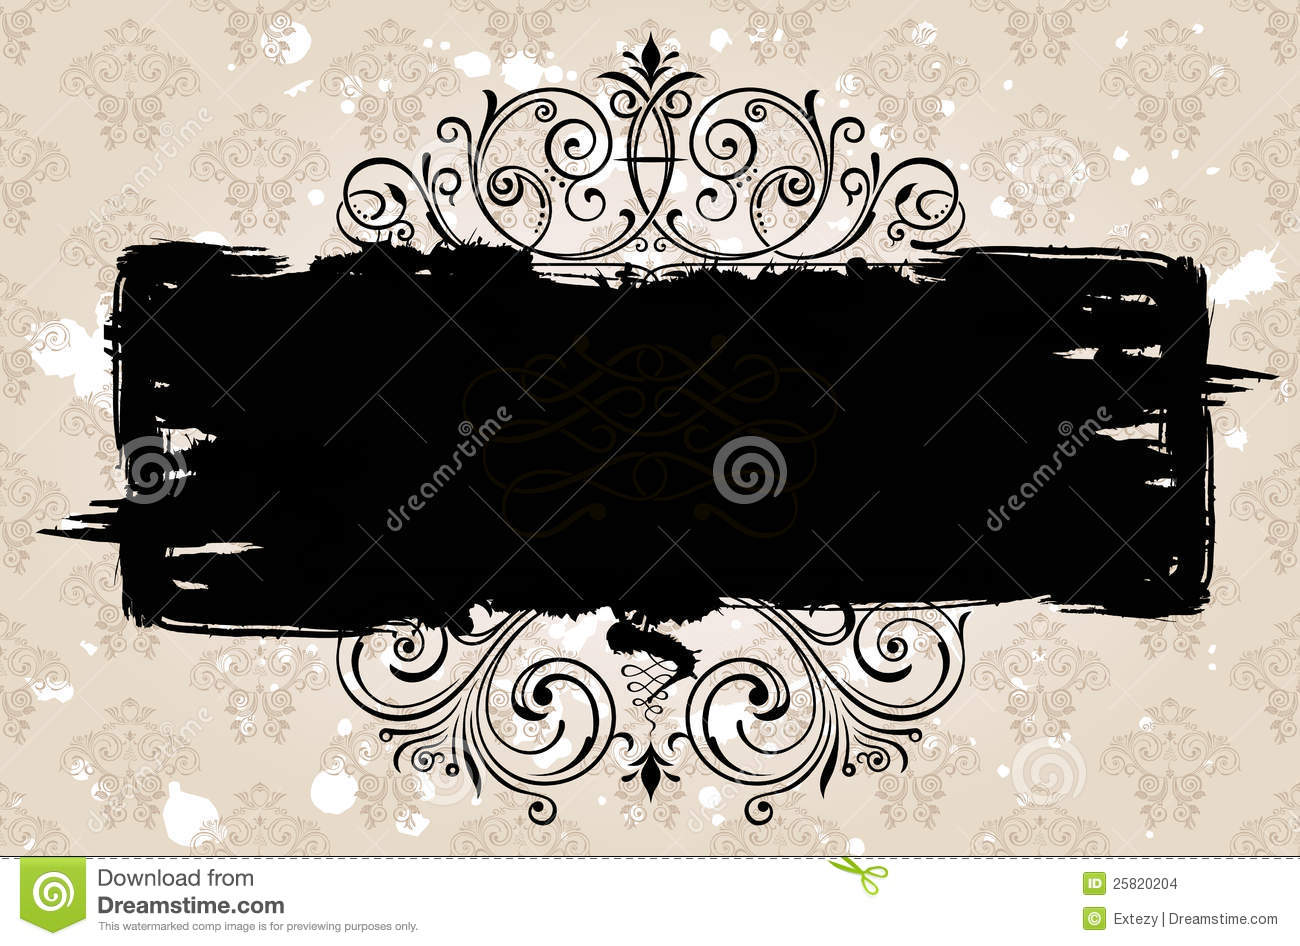 Grunge Black Banner Background. Vintage Patterned Stock Vector ...